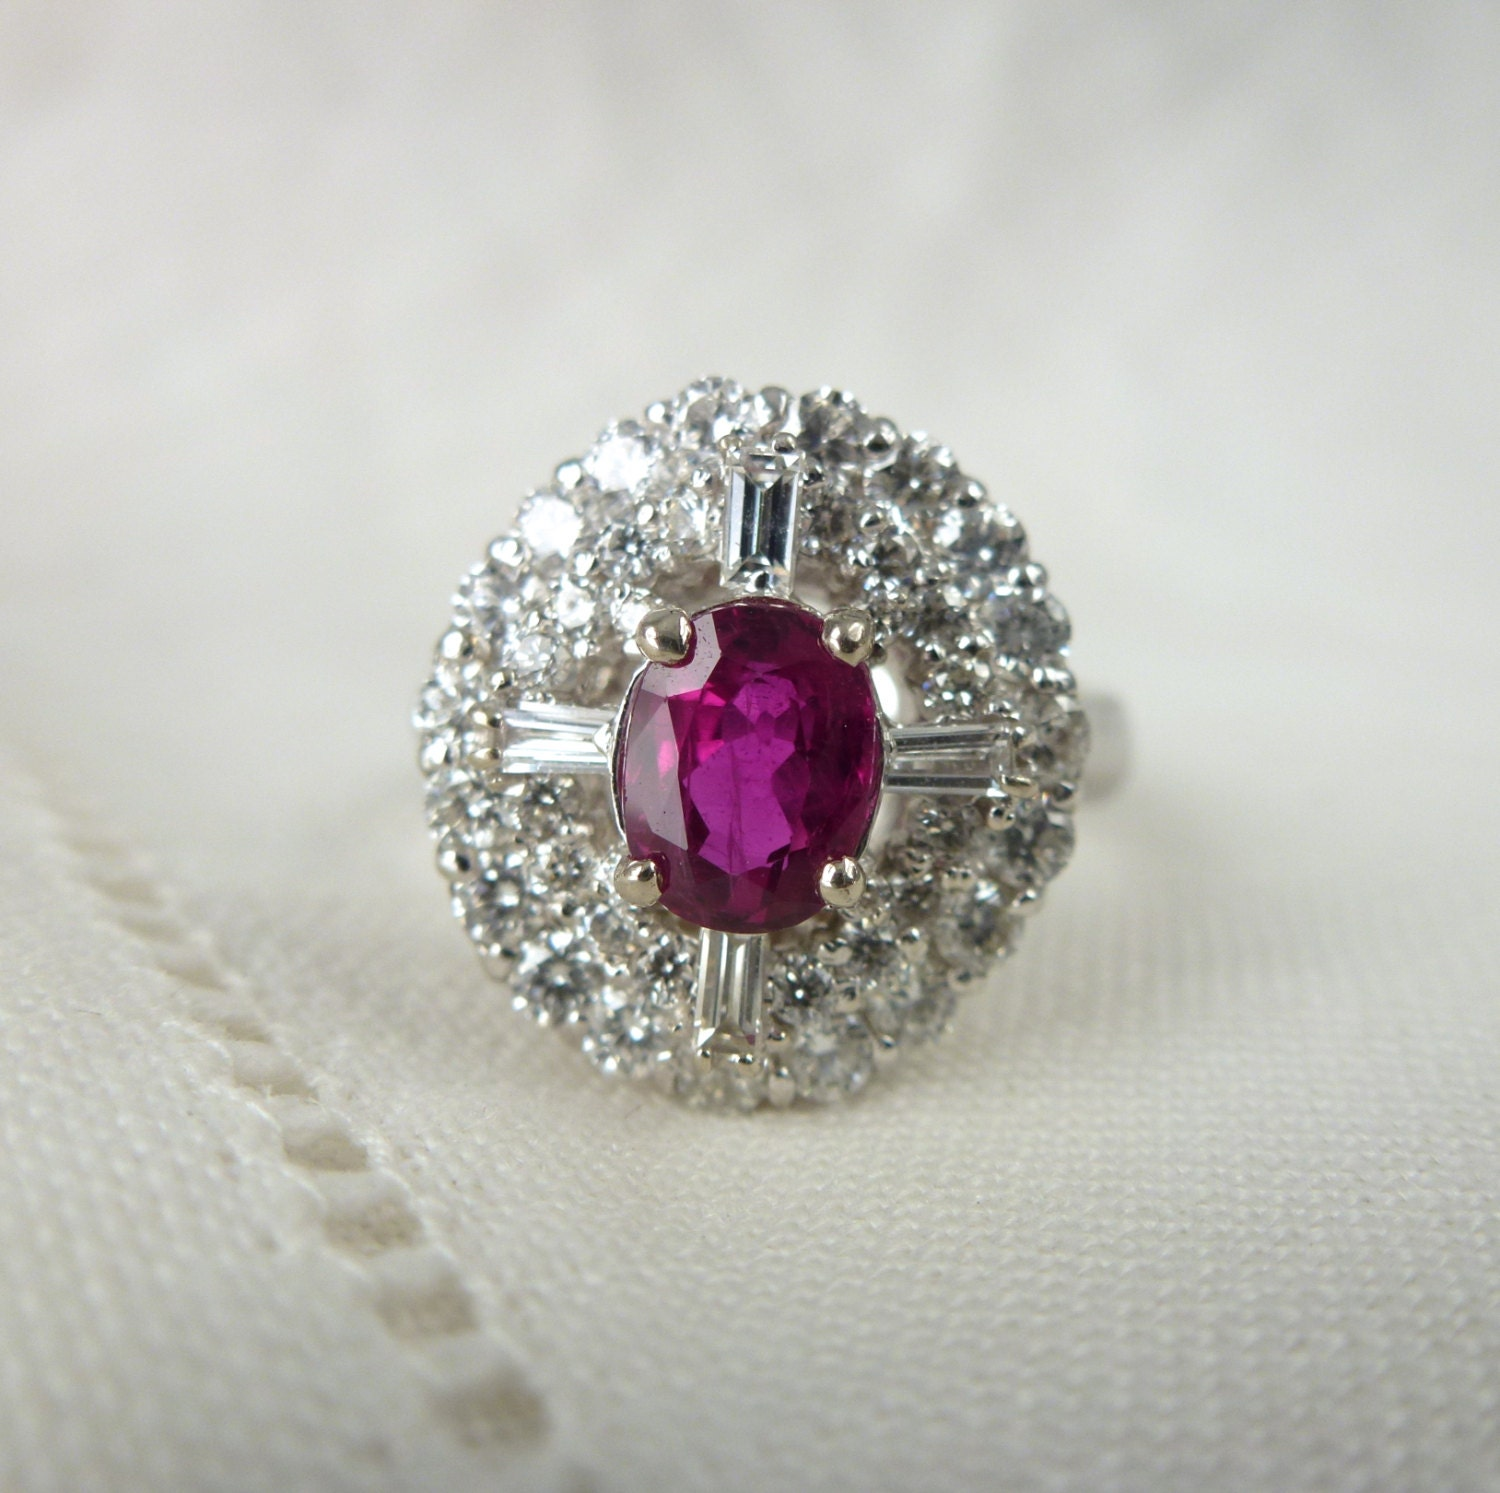 natural contemporary engagement antique jewelry bypass faberge rings ruby diamond vintage gold ring eggs